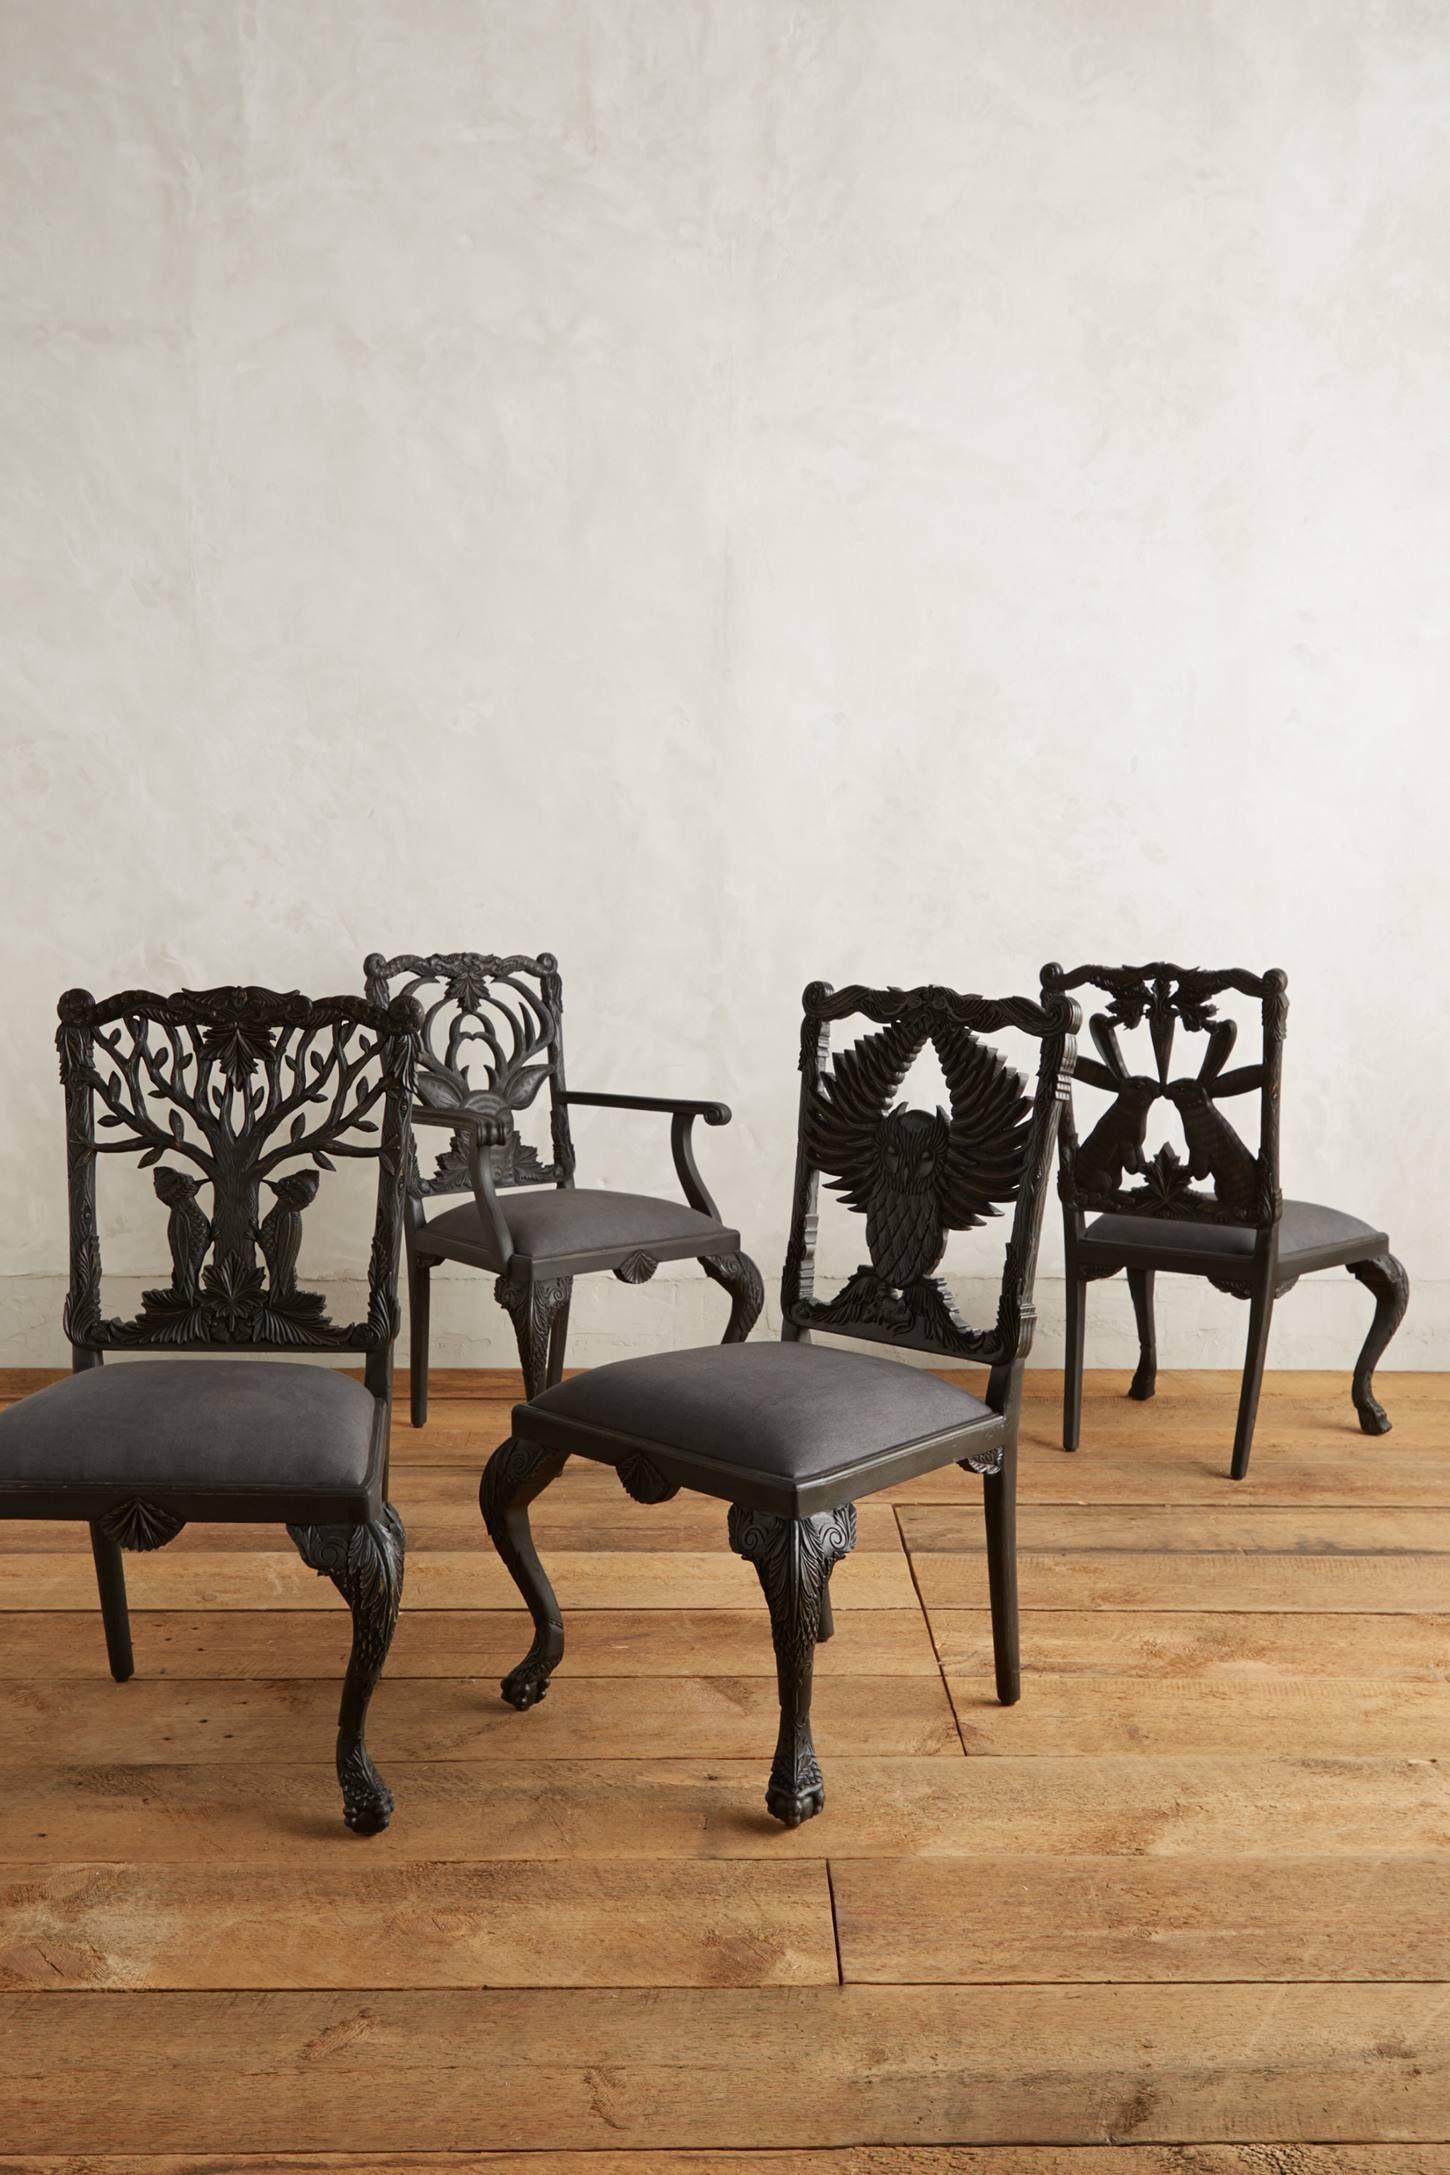 Shop The Handcarved Menagerie Woodpecker Dining Chair And More